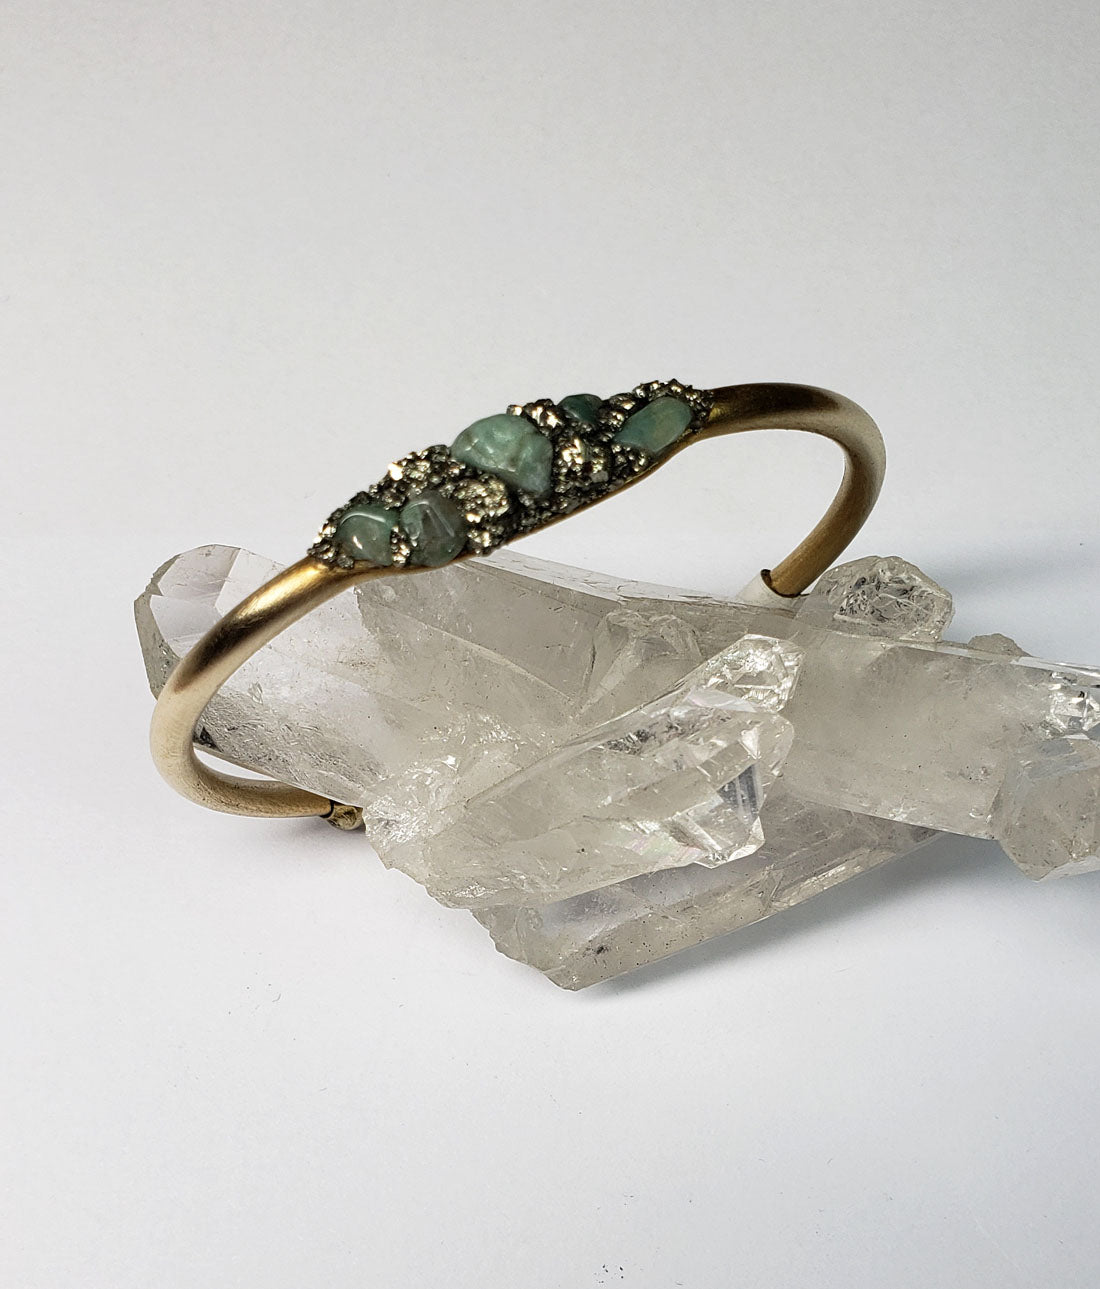 Marly Moretti Brass Cuff with Emerald Stones - Wanderlustre